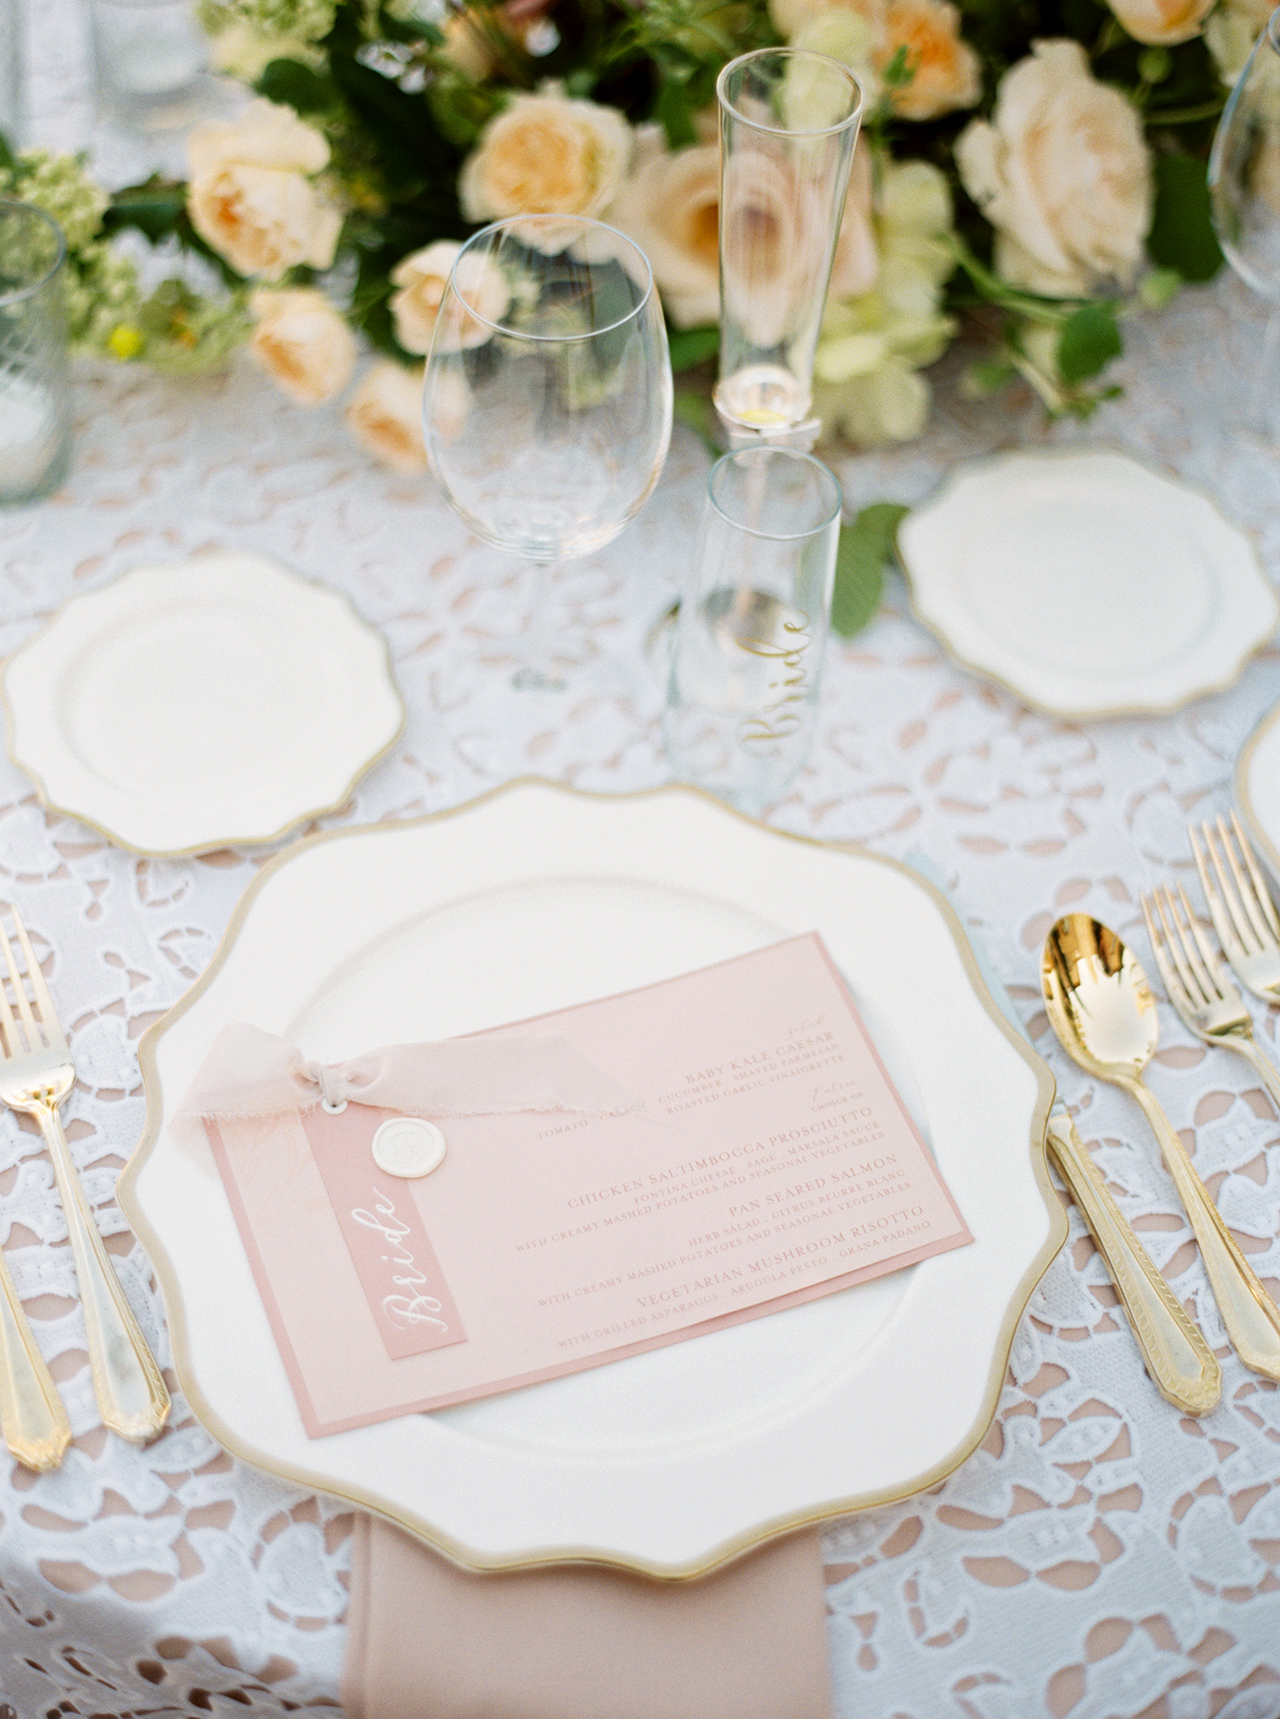 wedding reception blush-hued place setting menu